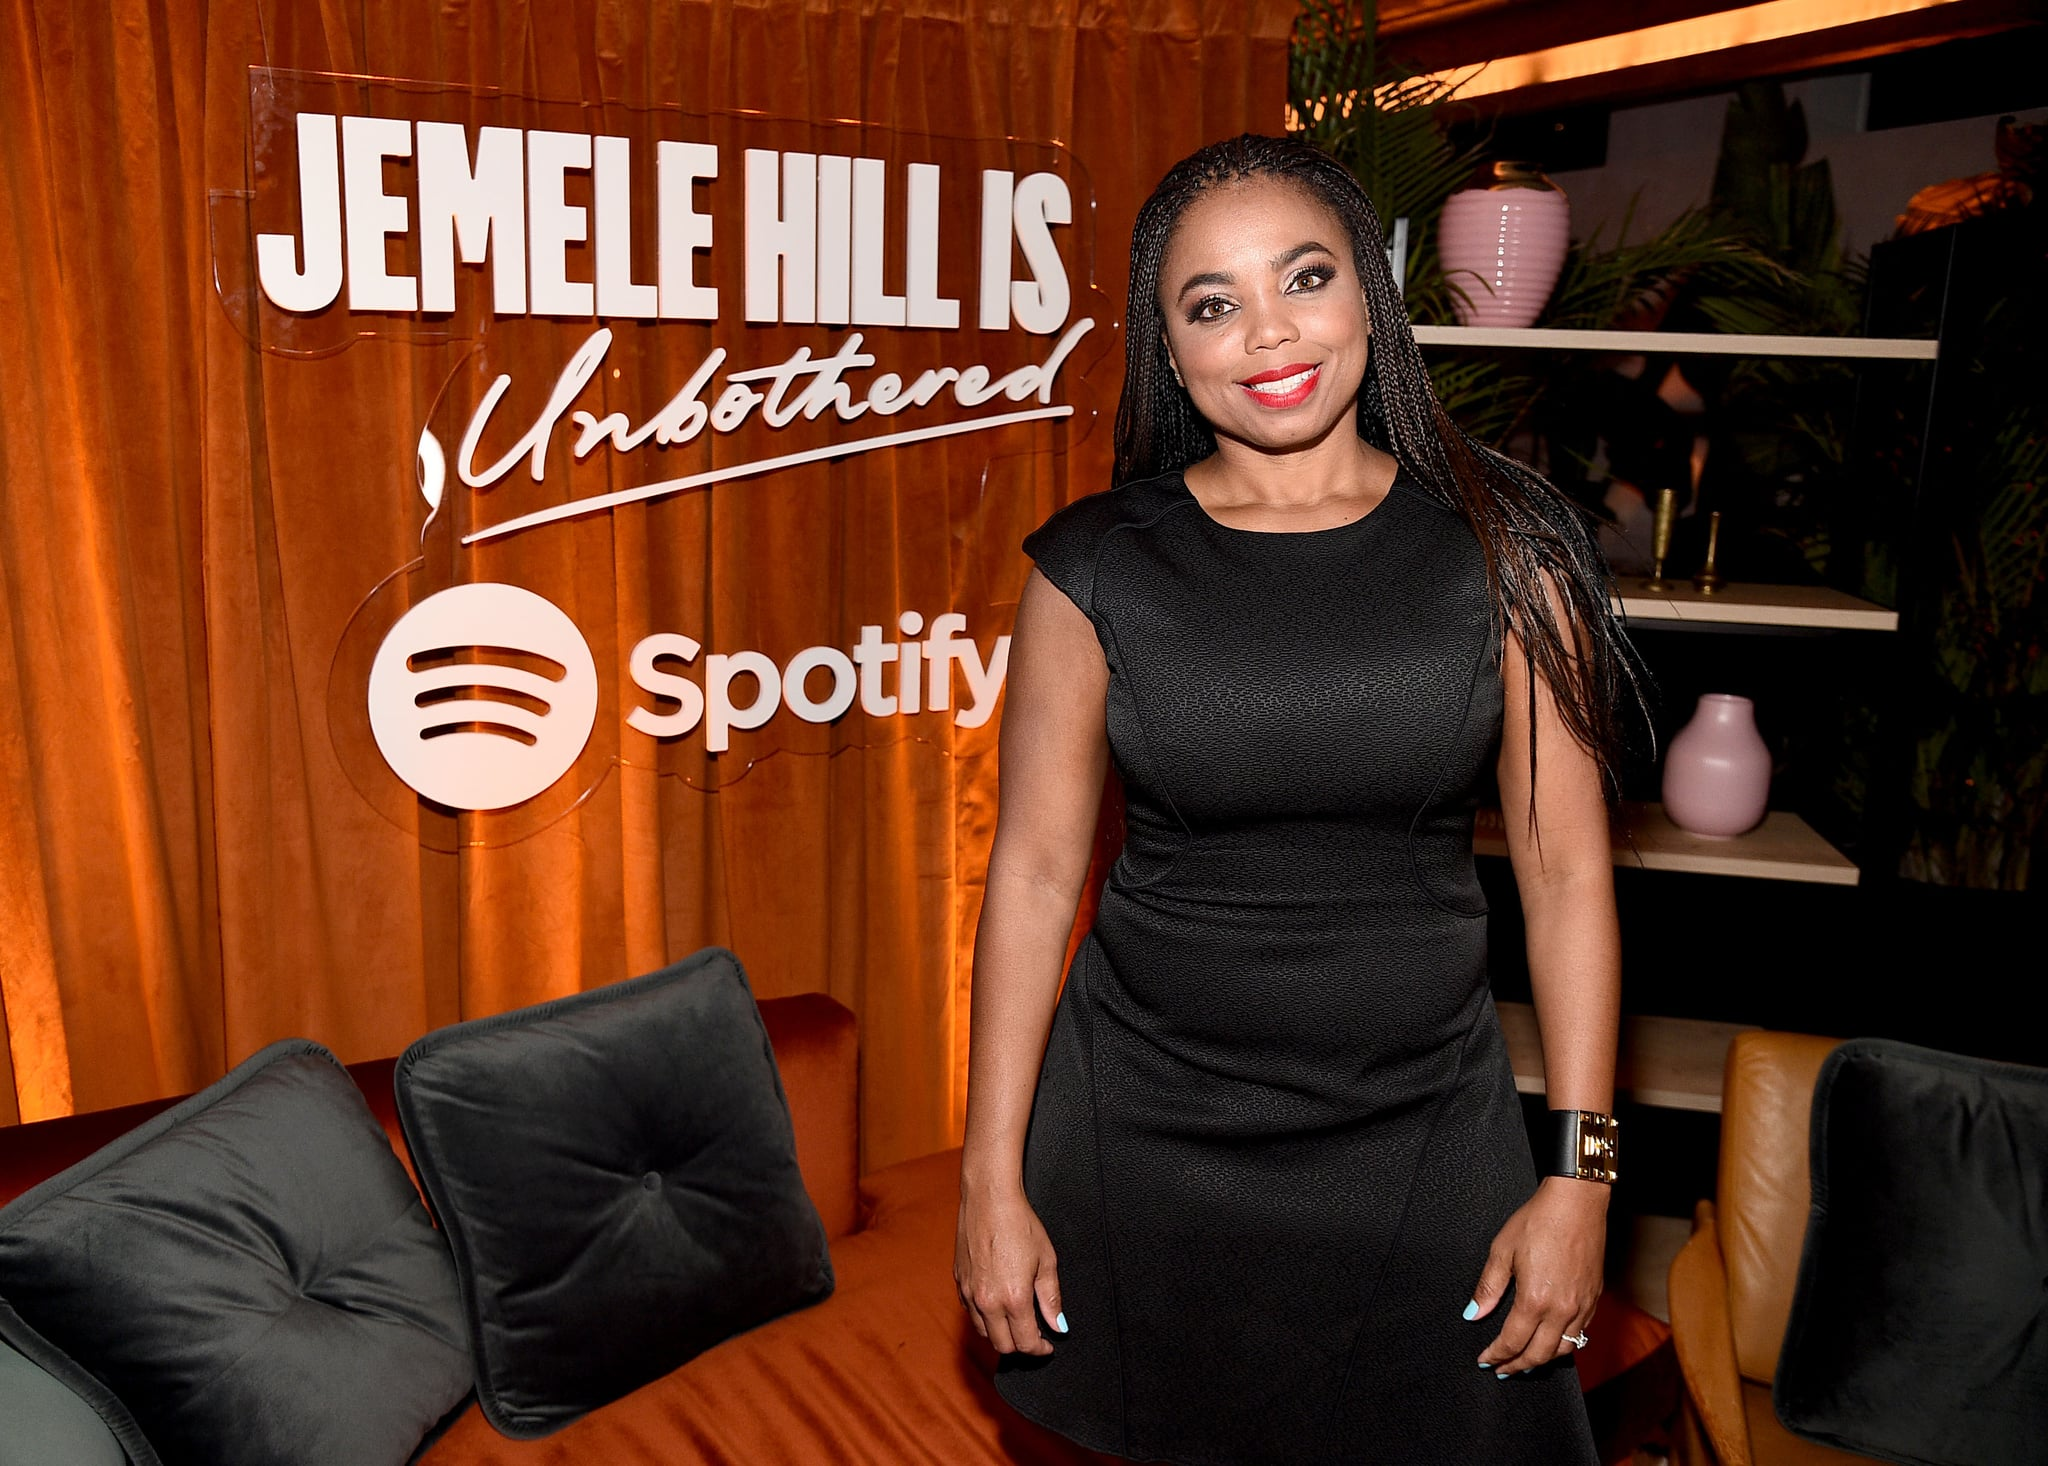 NEW YORK, NEW YORK - MARCH 26: Jemele Hill attends 'Spotify - Jemele Hill is Unbothered' at Gitano on March 26, 2019 in New York City. (Photo by Theo Wargo/Getty Images for Spotify)